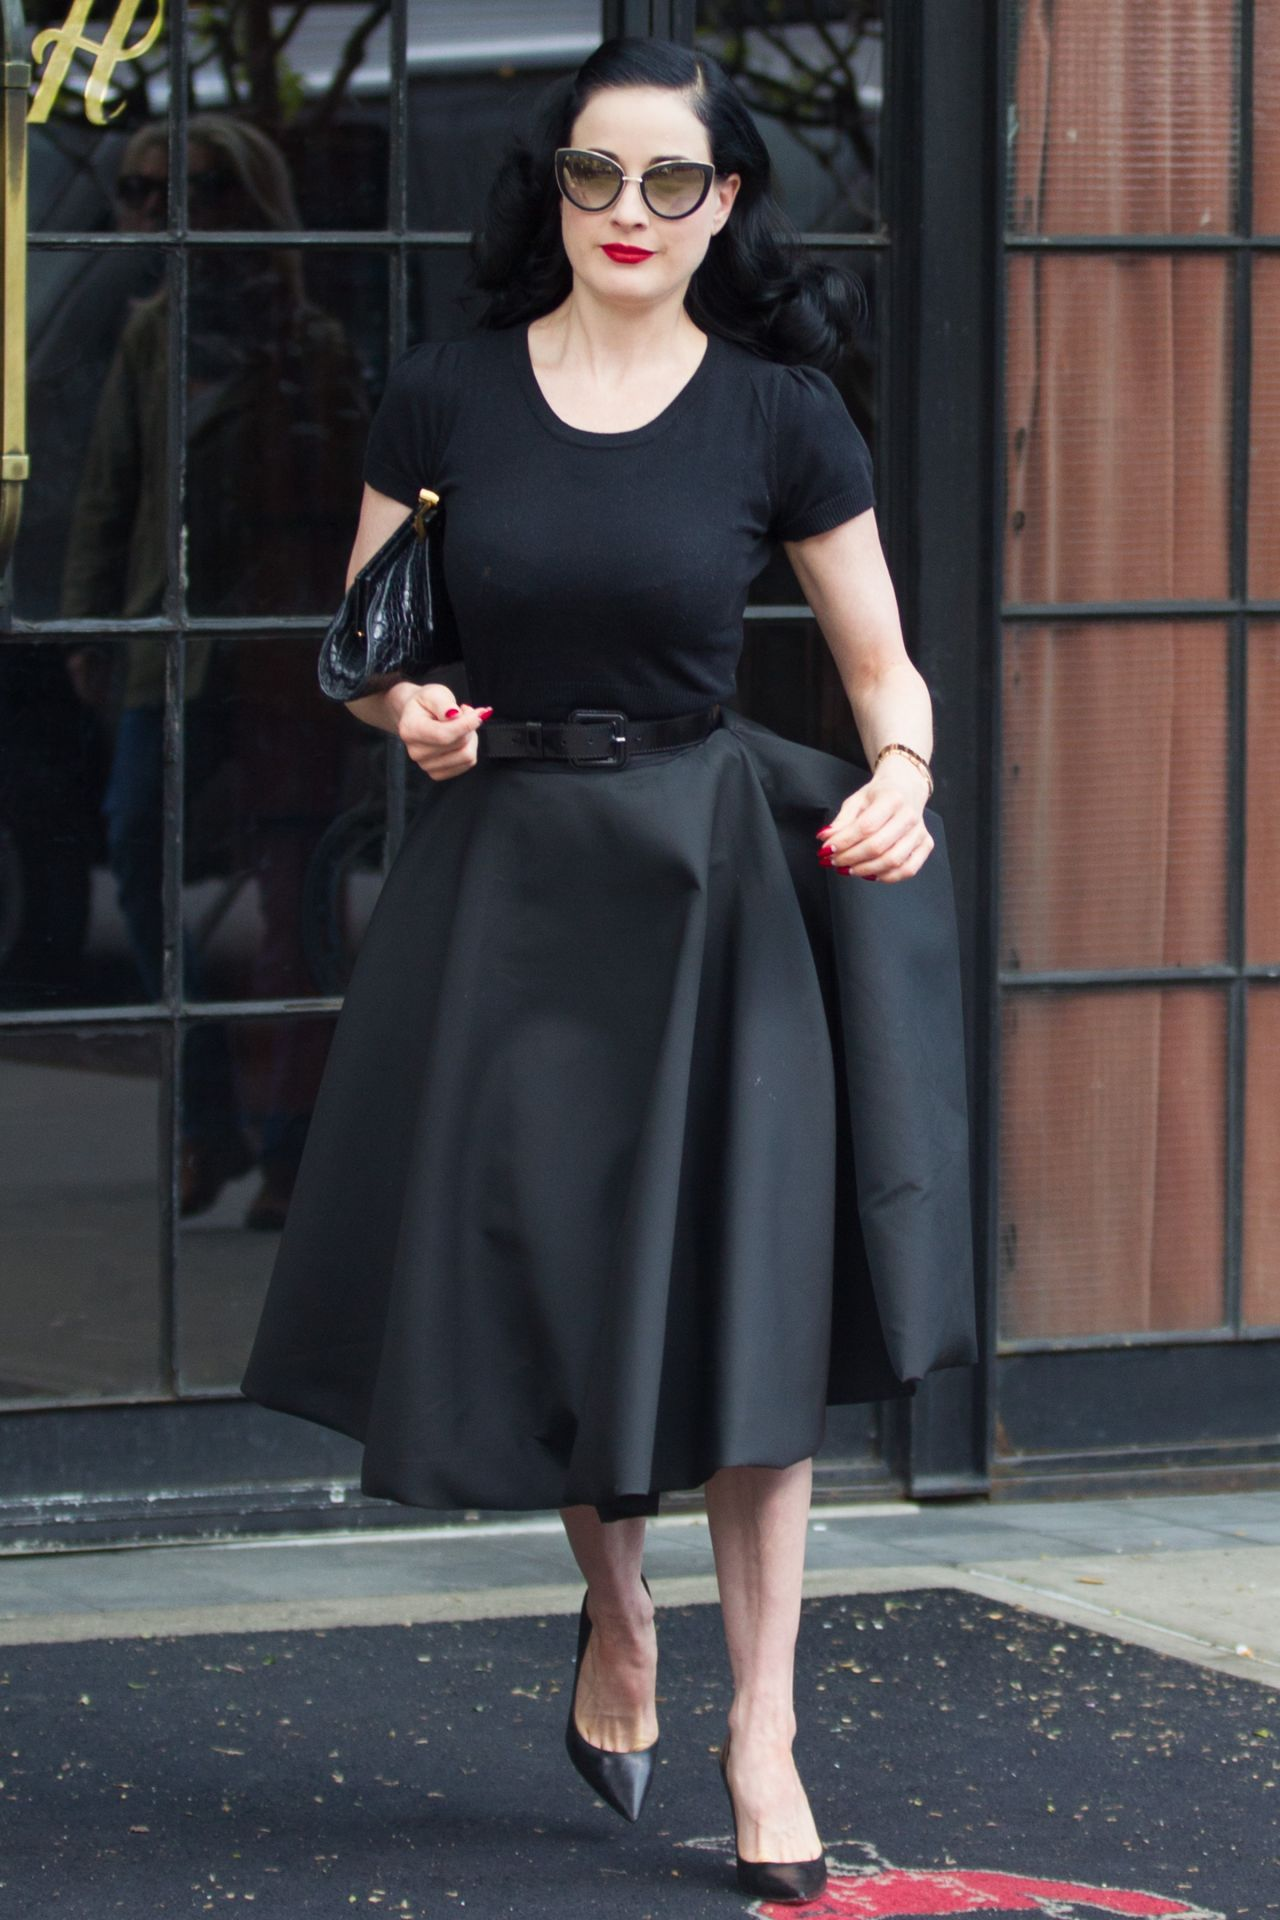 Dita Von Teese All in Black - Leaving Her Hotel in New York City - May 2014